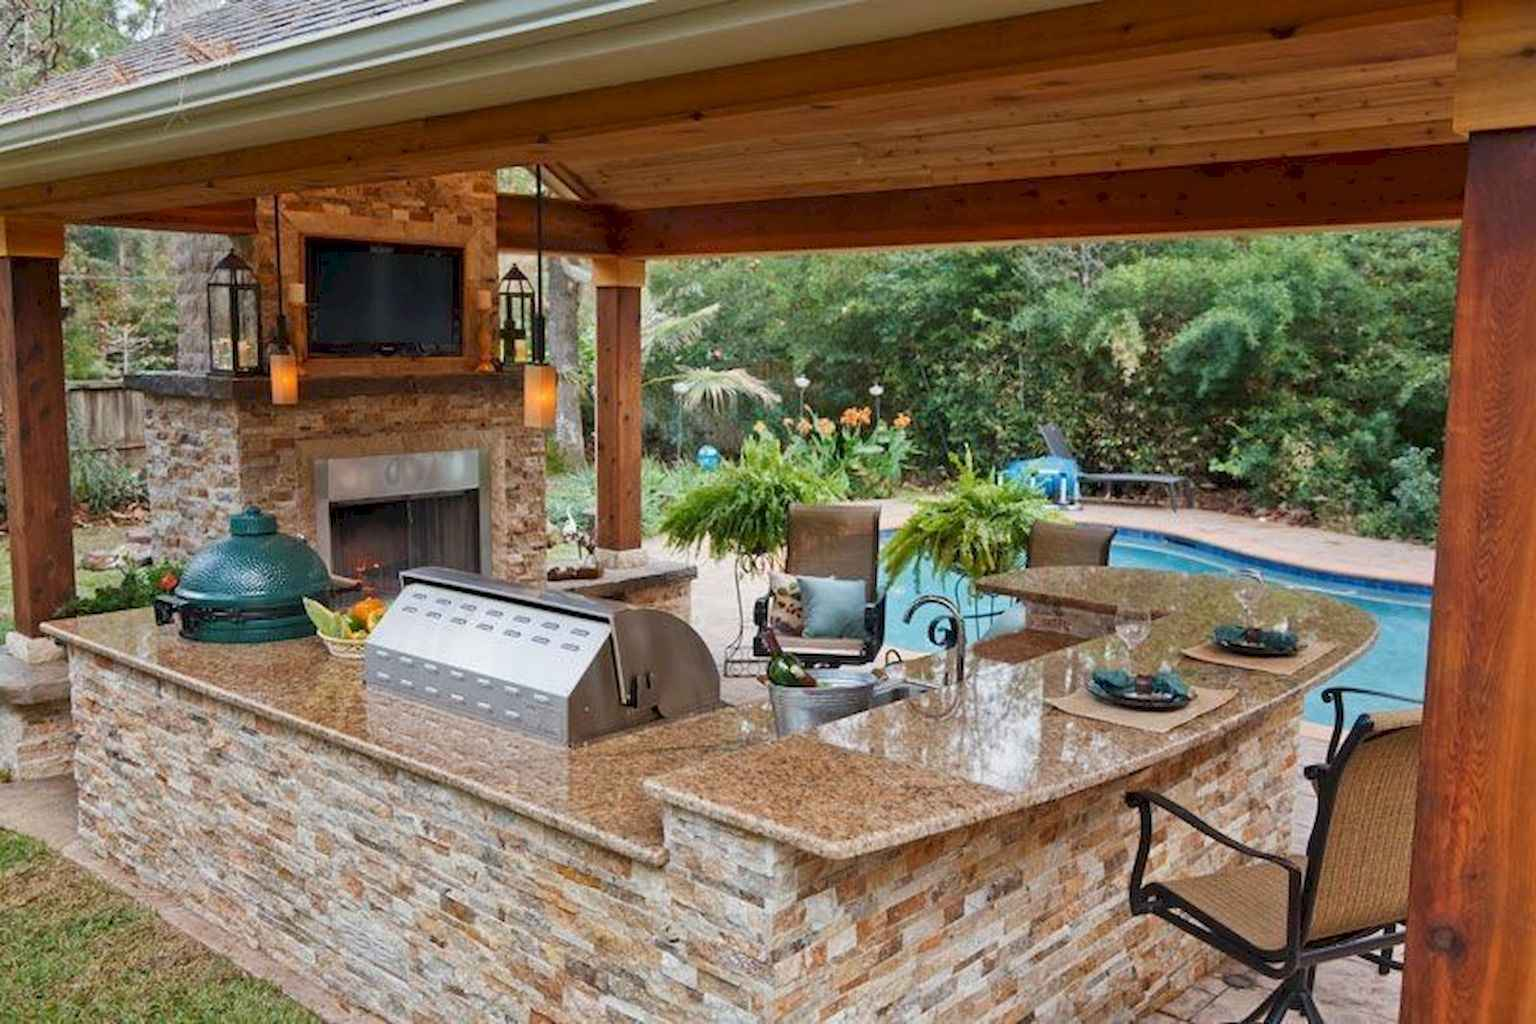 69 Amazing Outdoor Kitchen Design for Your Summer Ideas